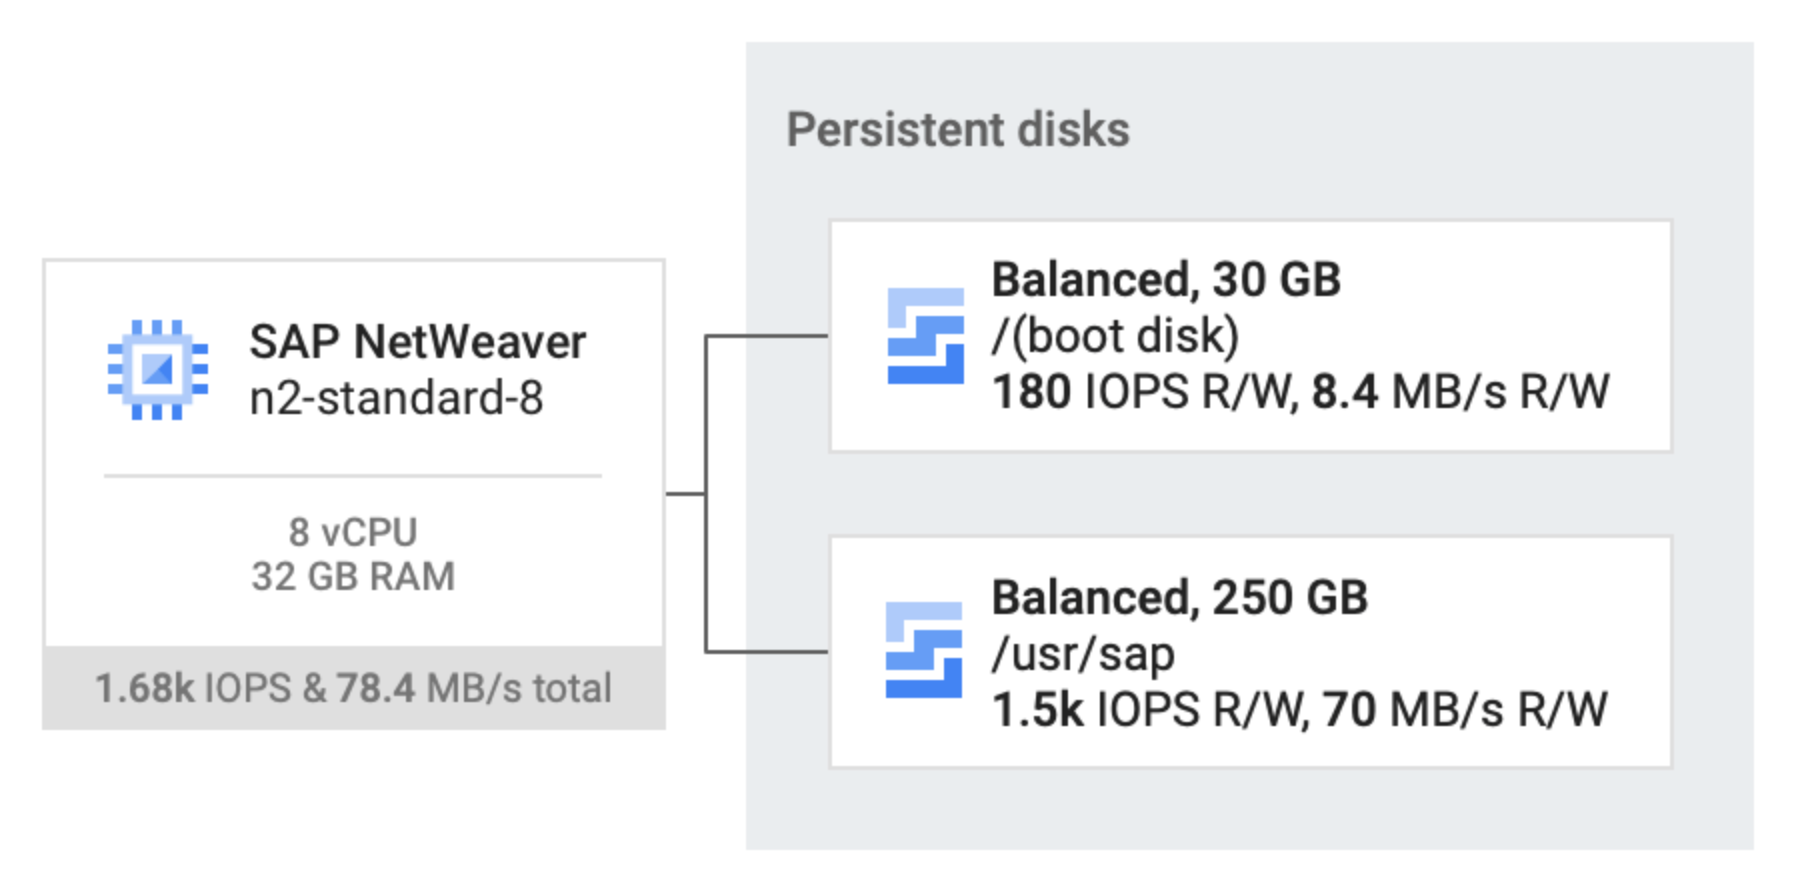 Two balanced persistent disks, one 80 GB and the other 250 GB, are attached to an n2-standard-32 host VM that is running SAP NetWeaver